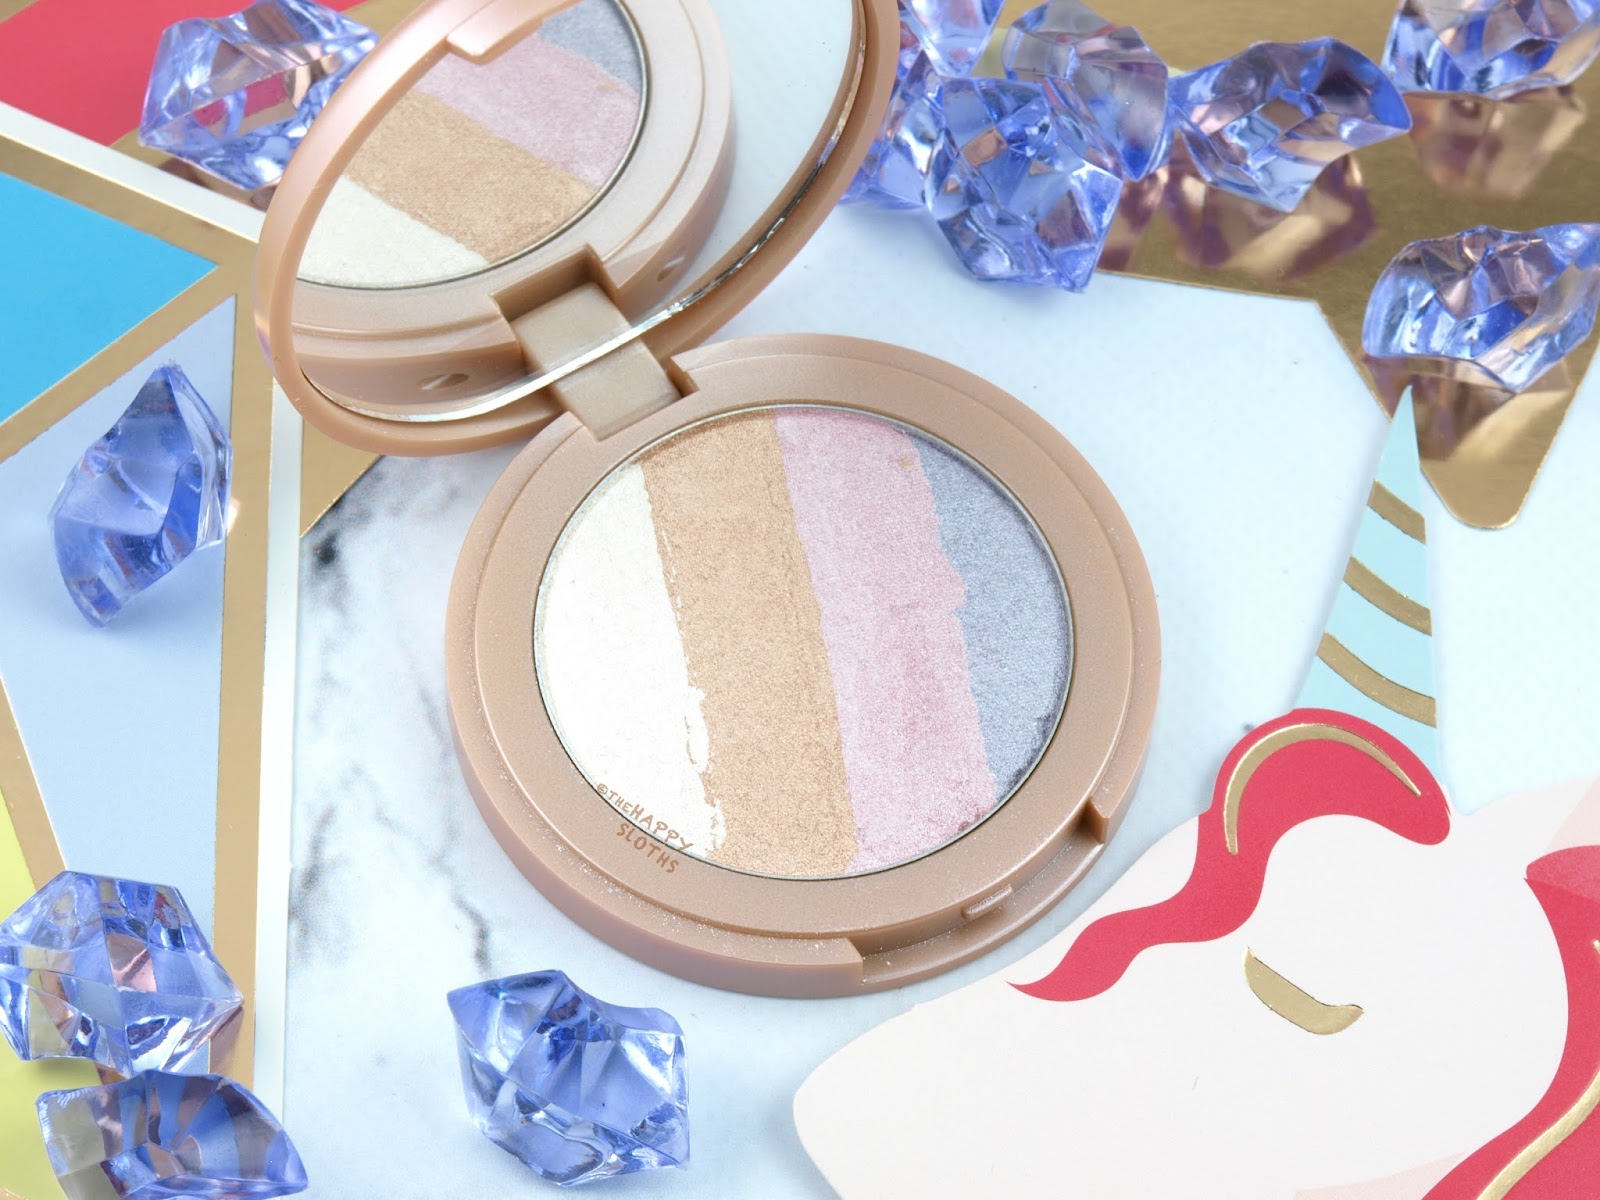 Tarte Summer 2017 Spellbound Glow Rainbow Highlighter: Review and Swatches